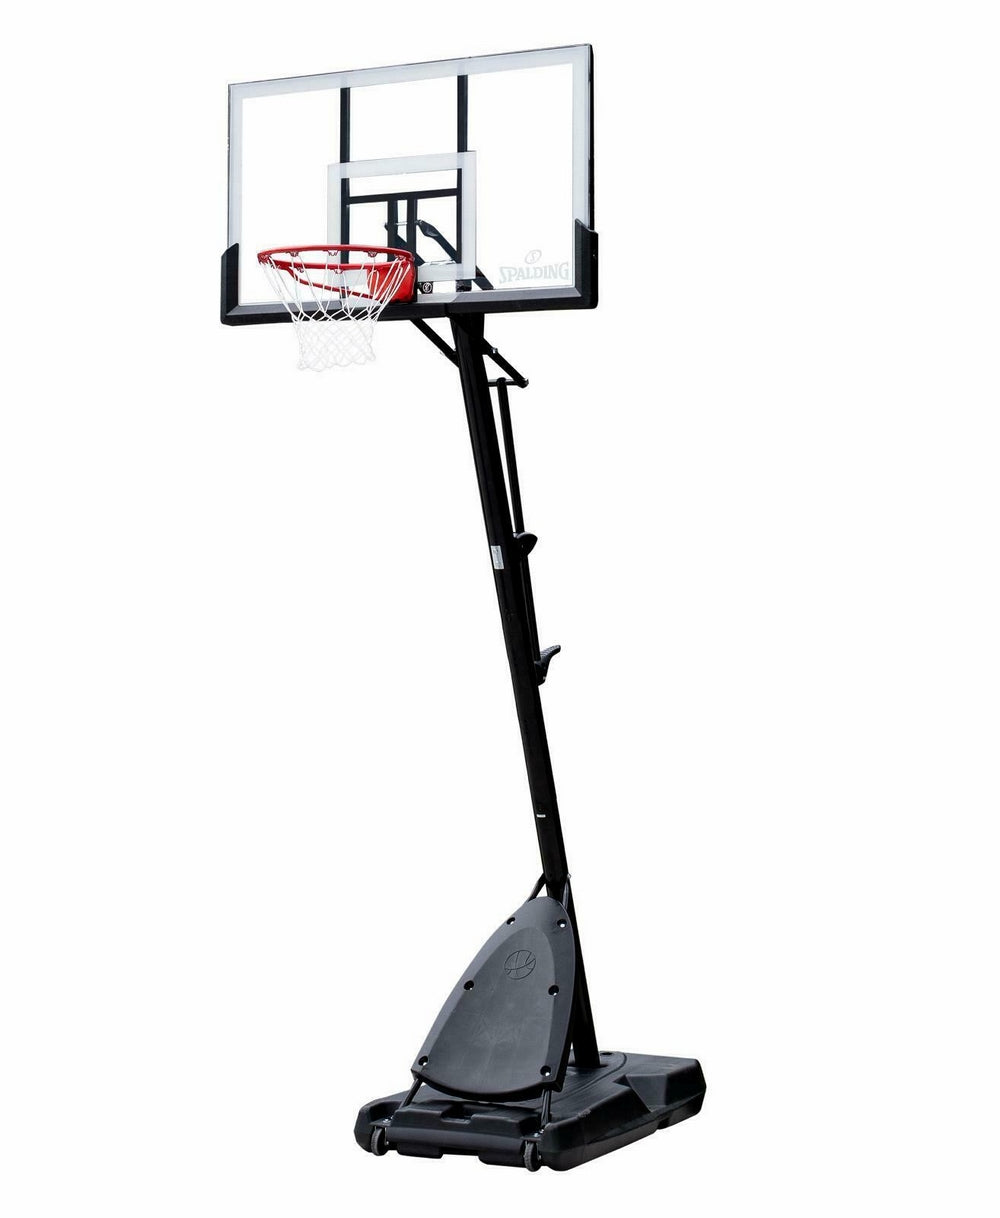 Basketball | Spalding 54 Inch Portable Adjustable Basketball System System